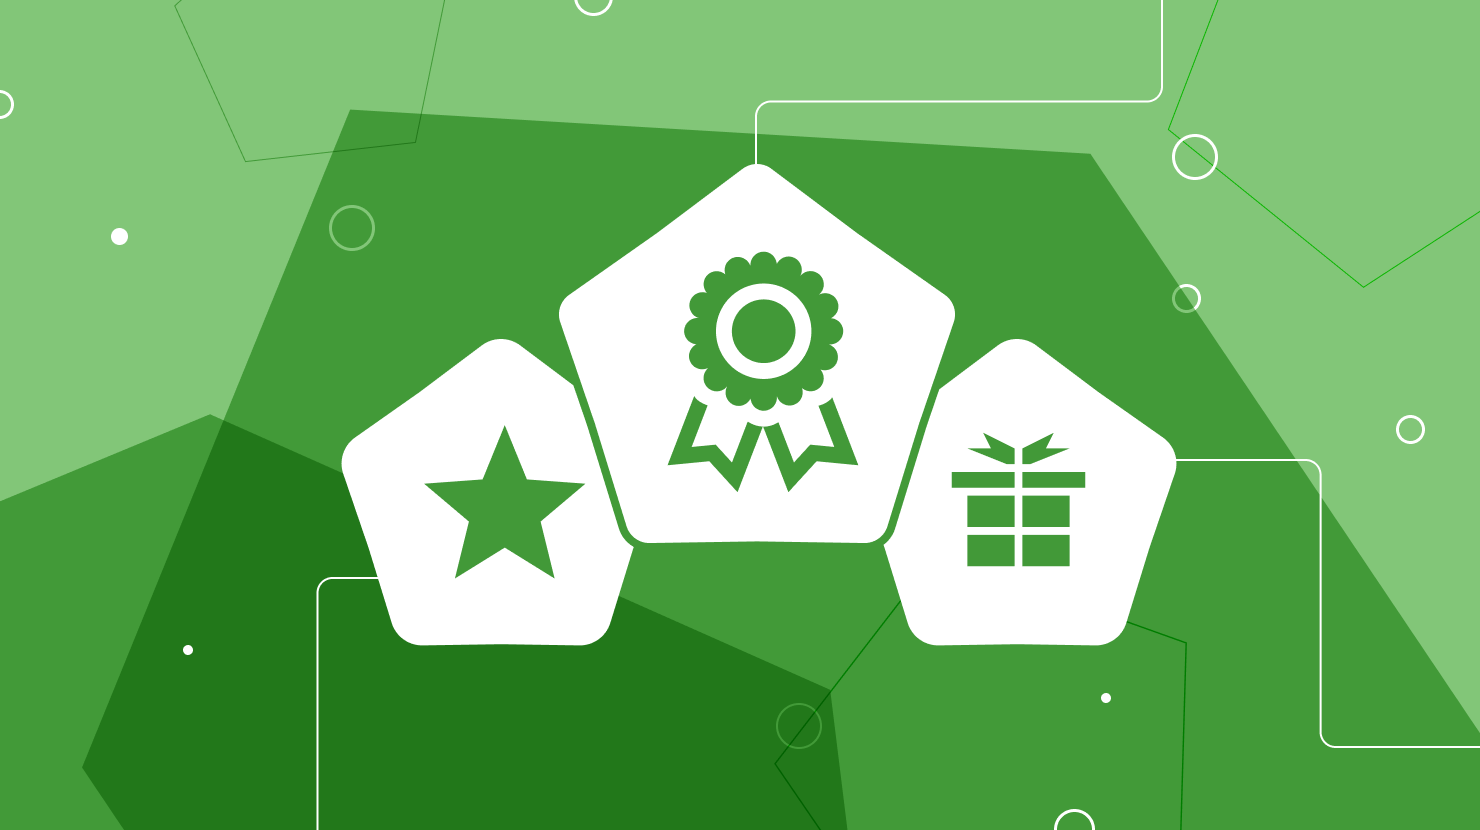 3 ways to boost employee engagement with gamification